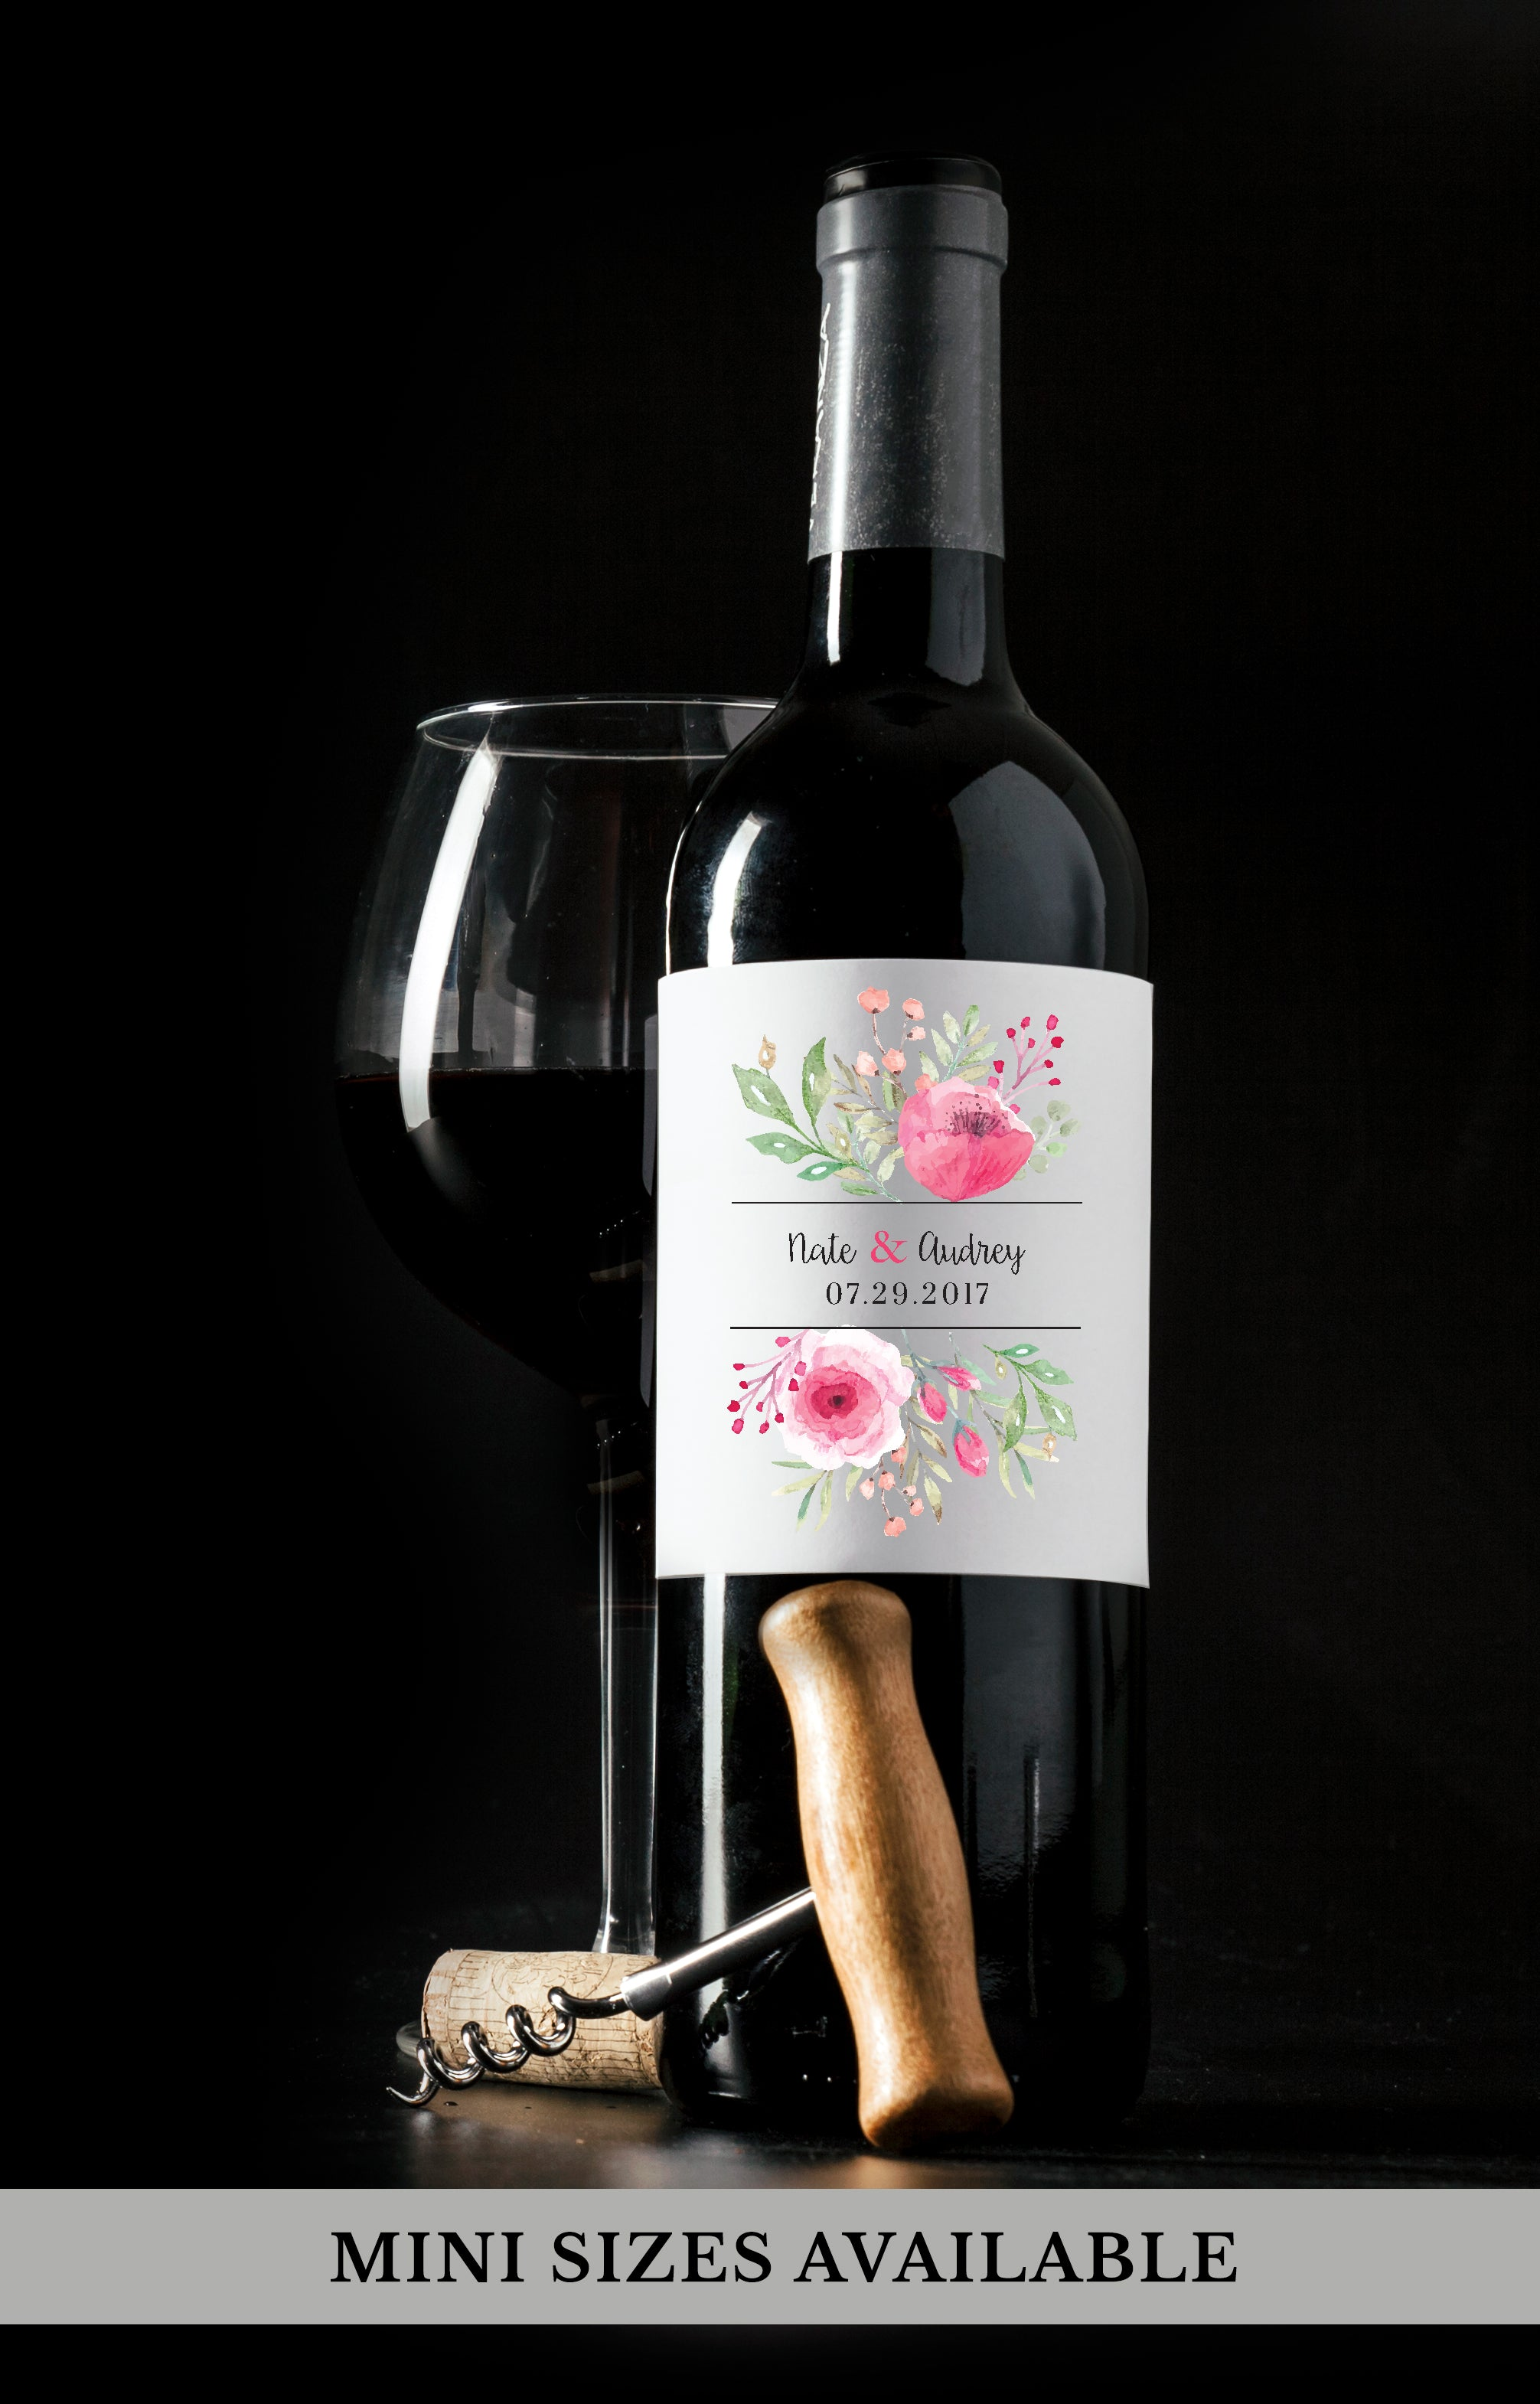 Floral Wedding Wine Bottle Labels | Standard & Mini Sizes Available